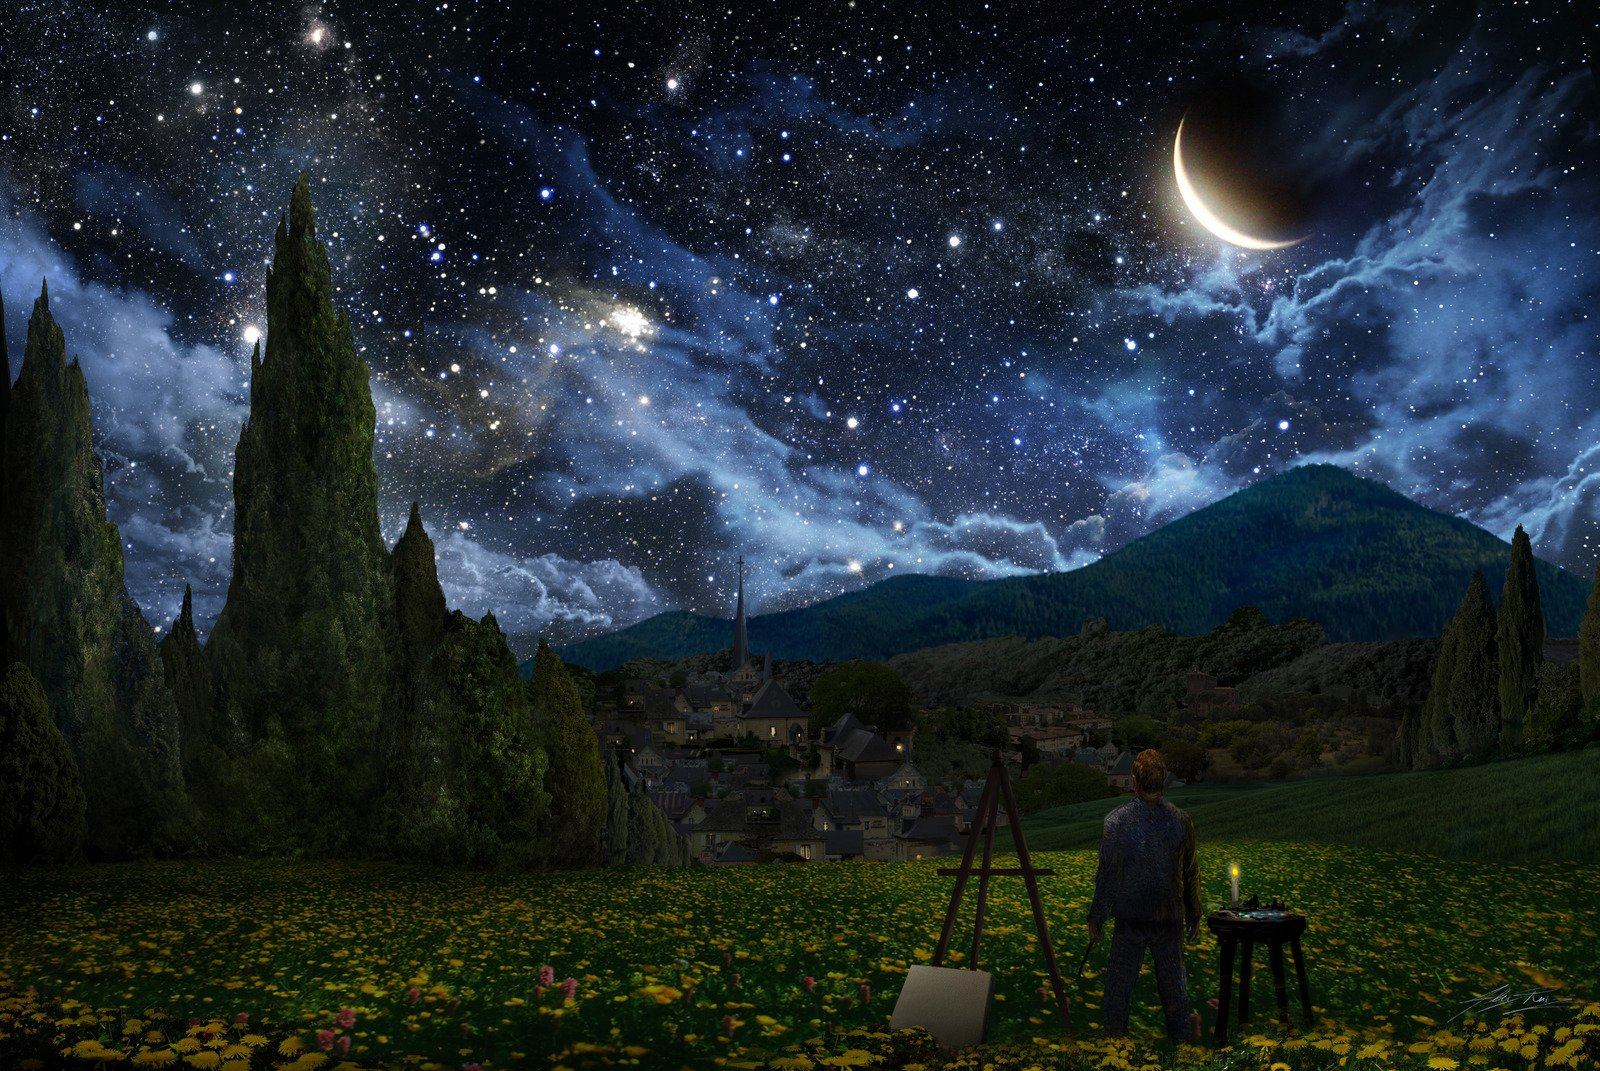 Starry Night Painting By Alex Ruiz Wallpaper And Background Image